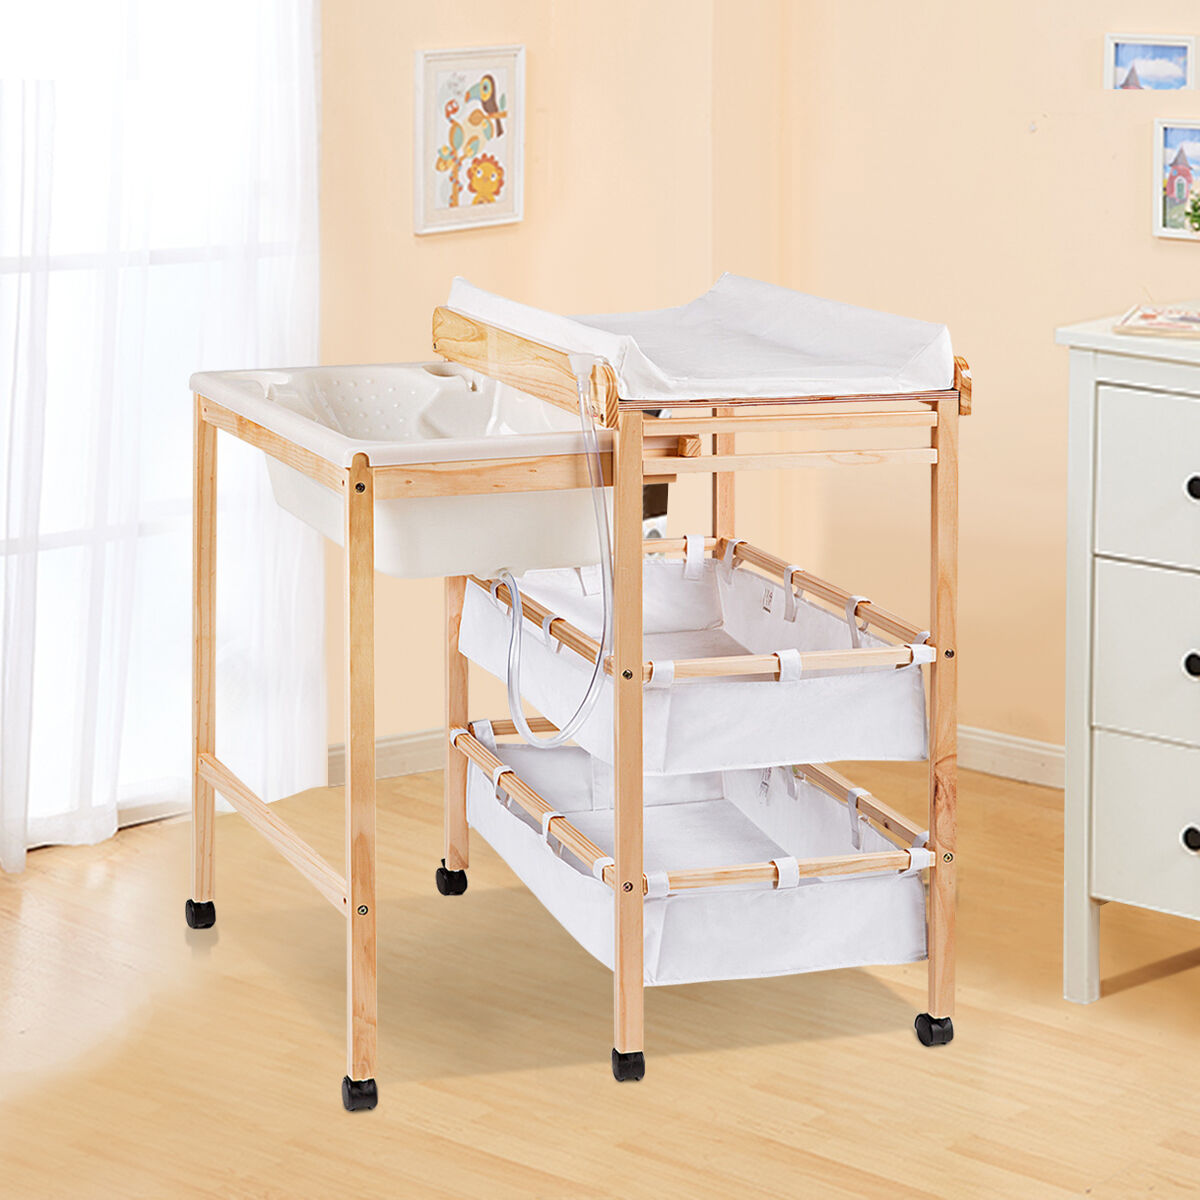 Baby changing station wood changer bath unit nursery wheel for Changing table for bathroom